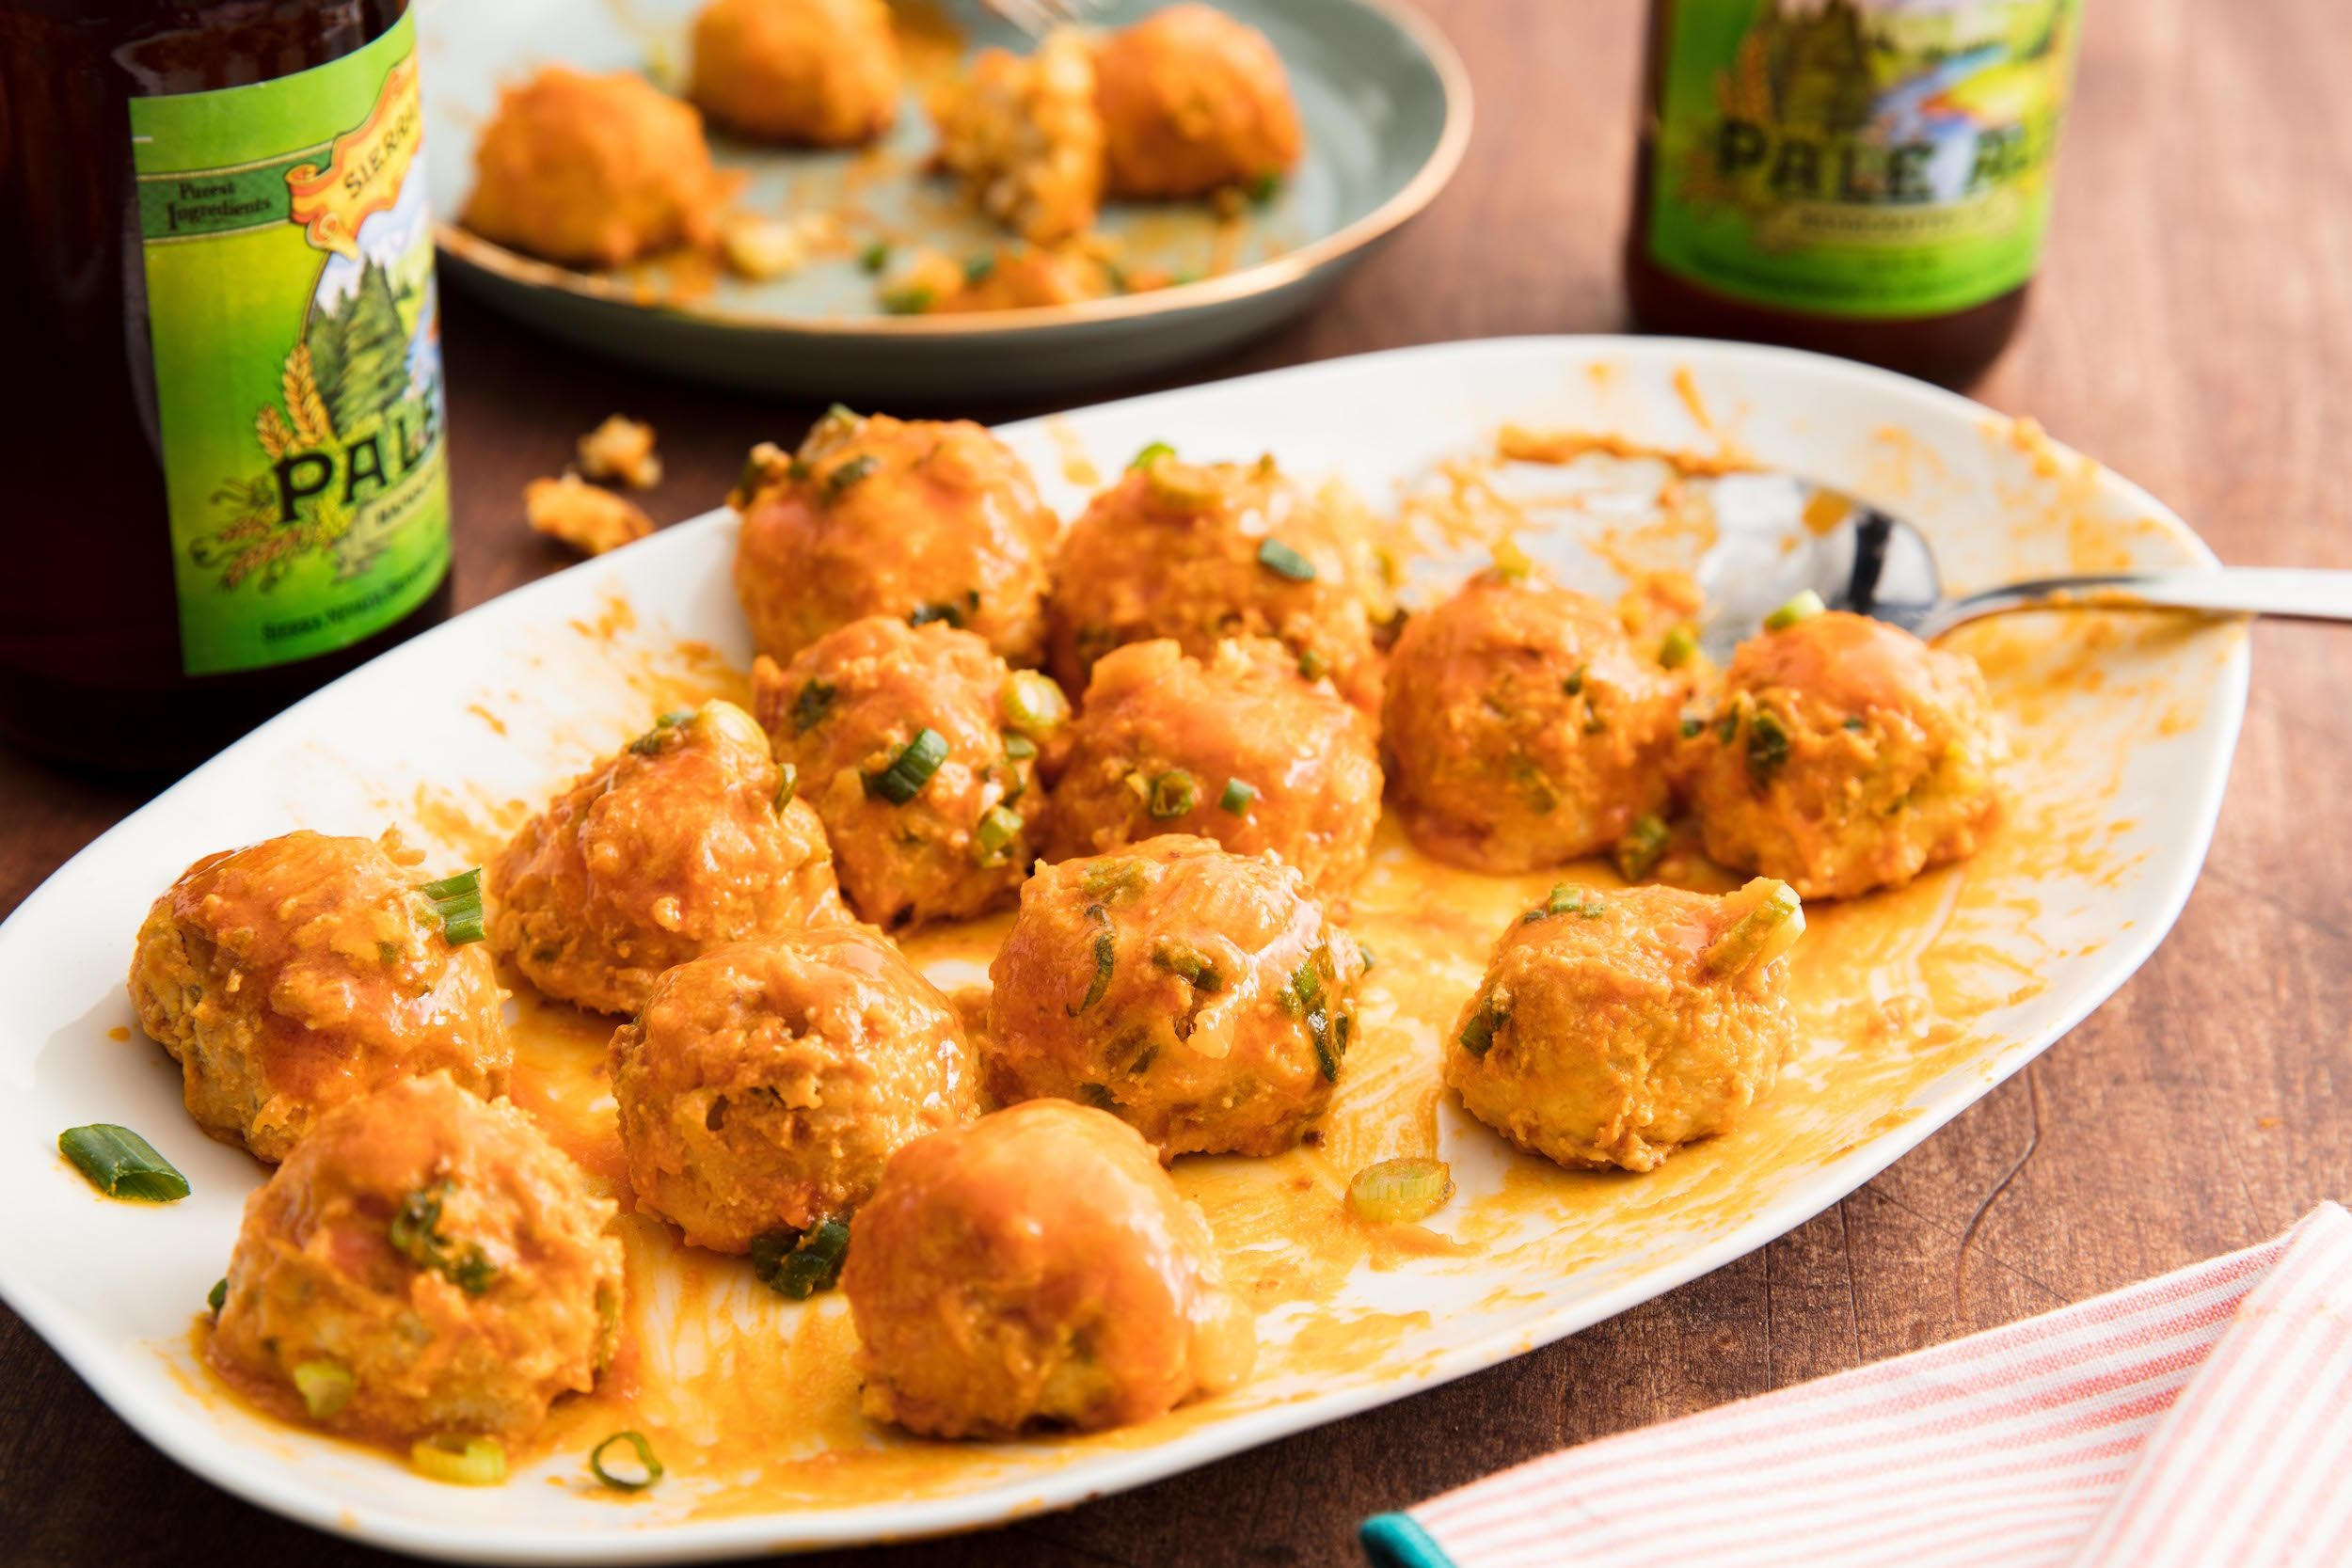 Best Buffalo Chicken Meatballs Recipe How To Make Buffalo Chicken Meatballs Delish Com